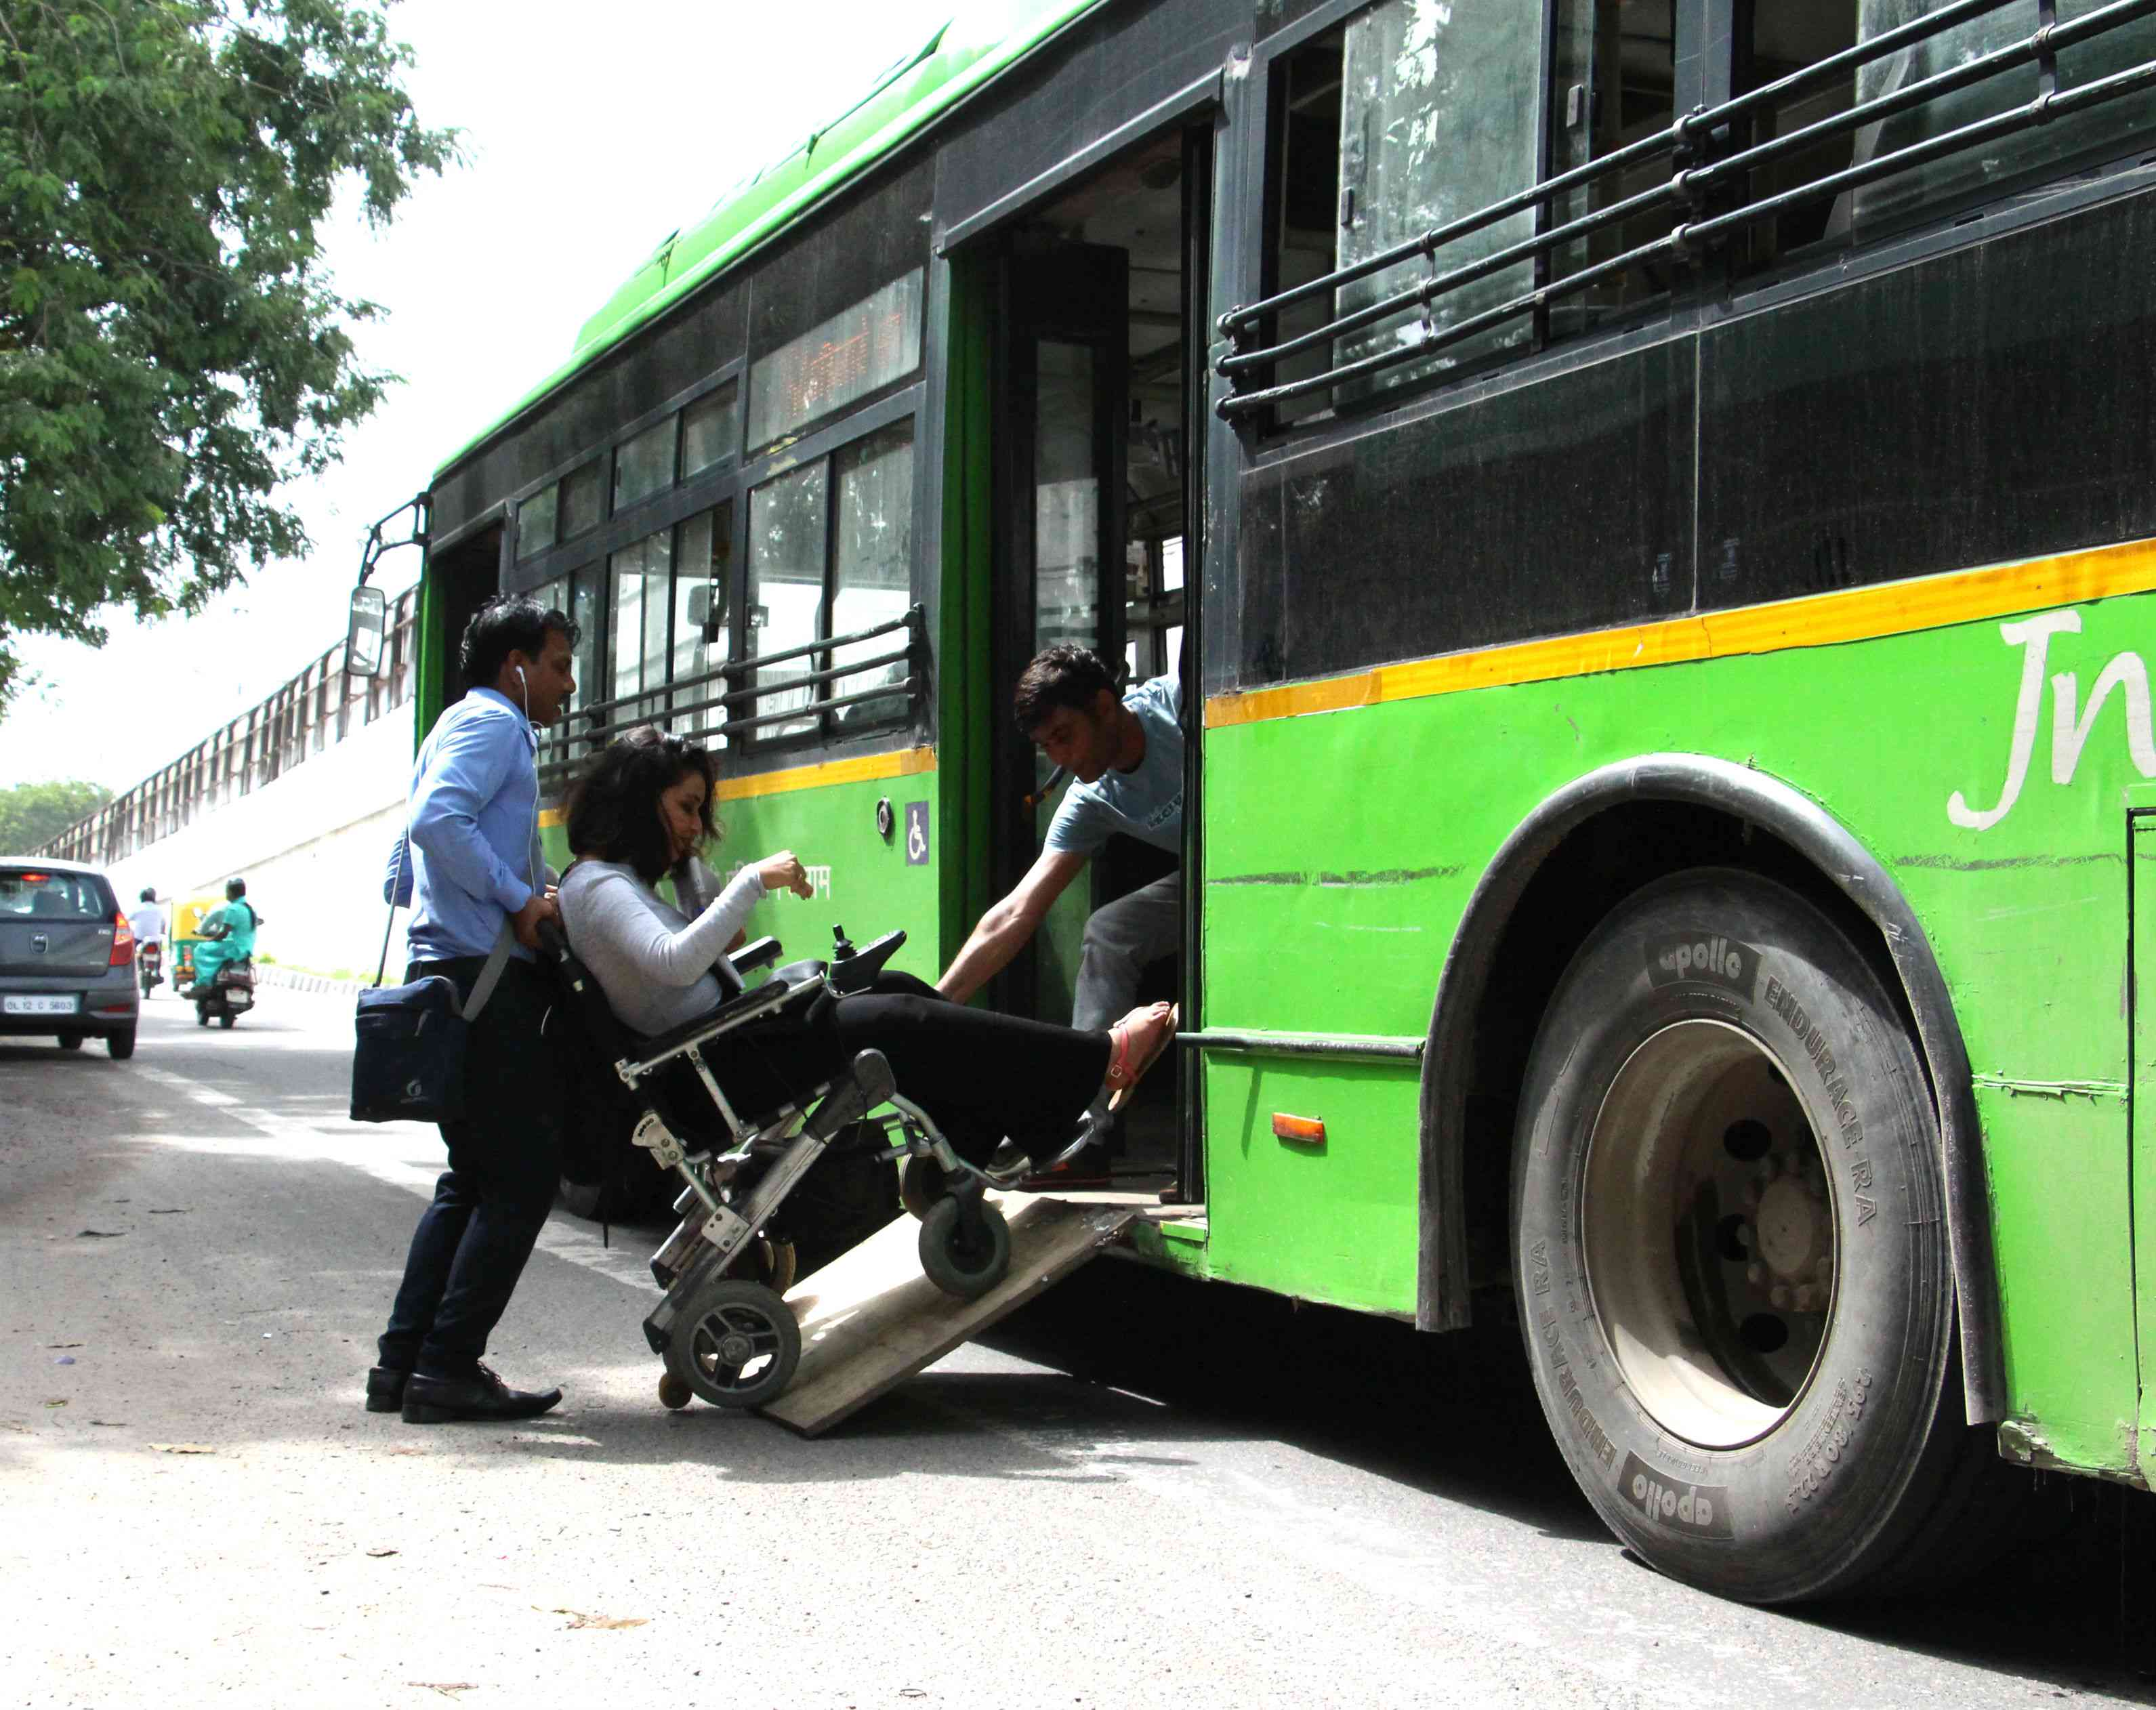 With buses stopping far away from the kerb, entering the bus becomes a difficult task for wheelchair users like Preeti Singh (pictured here) and requires assistance from fellow commuters or the bus conductor.